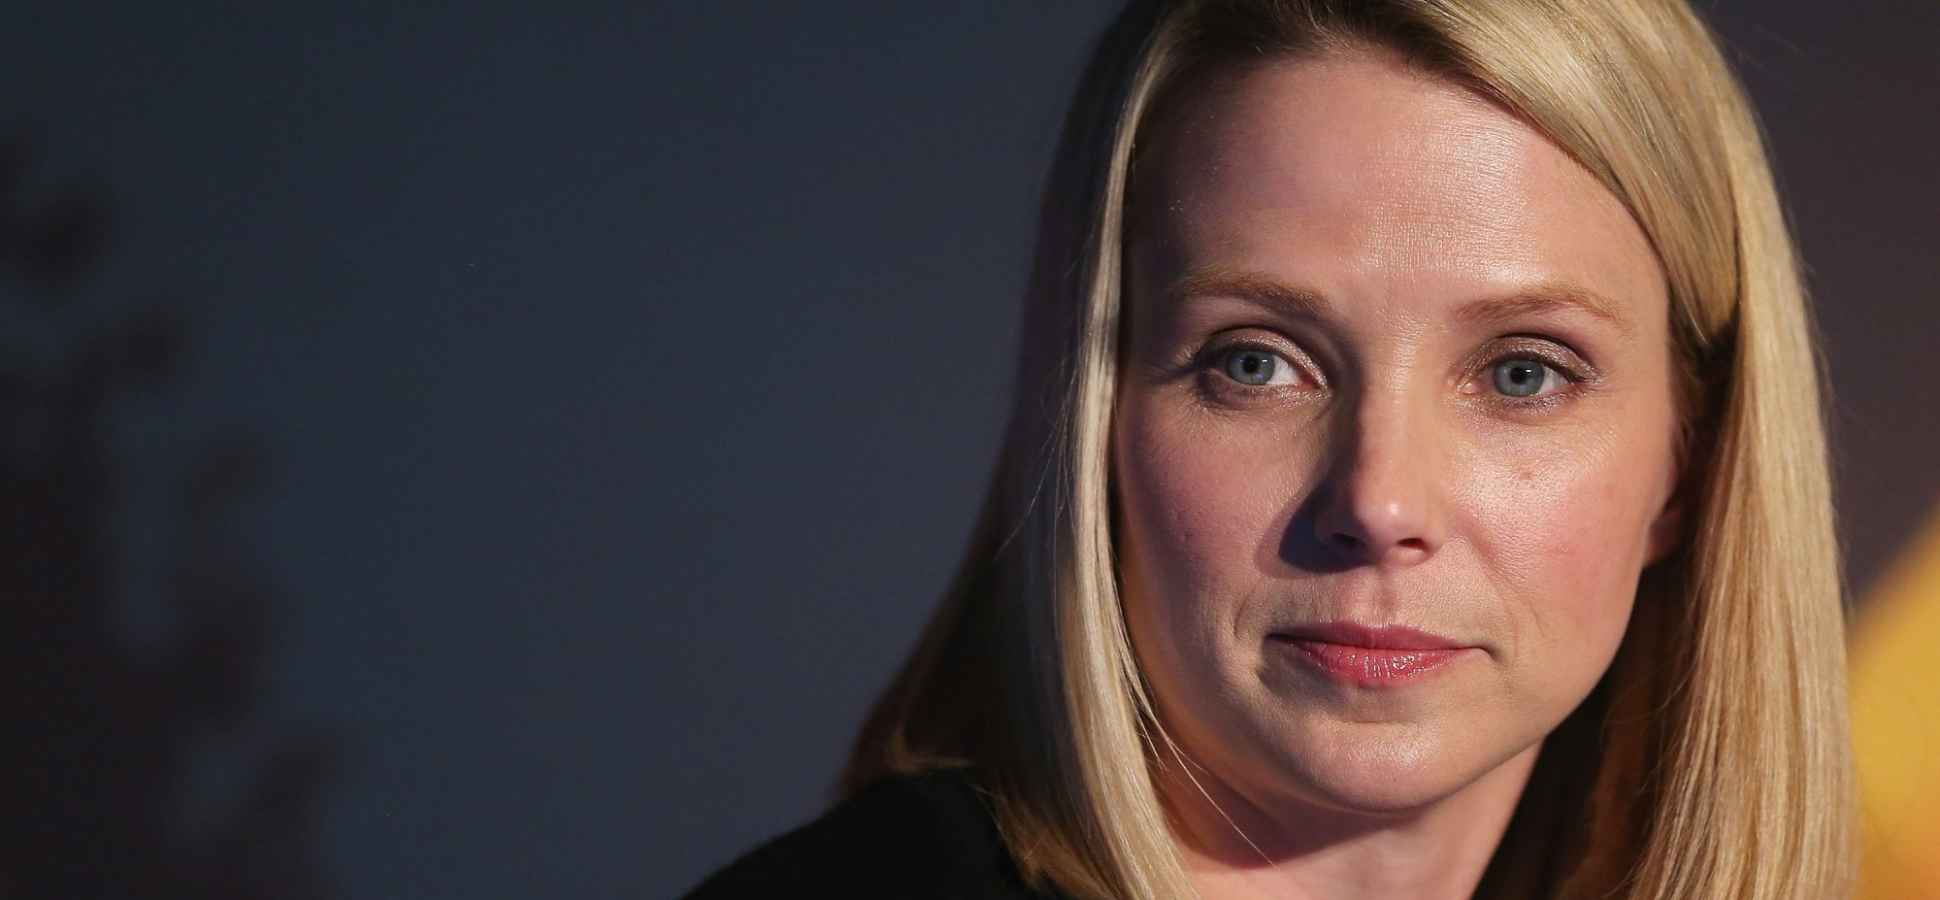 With a Single Payday, Marissa Mayer Showed Us Why Results Don't Matter